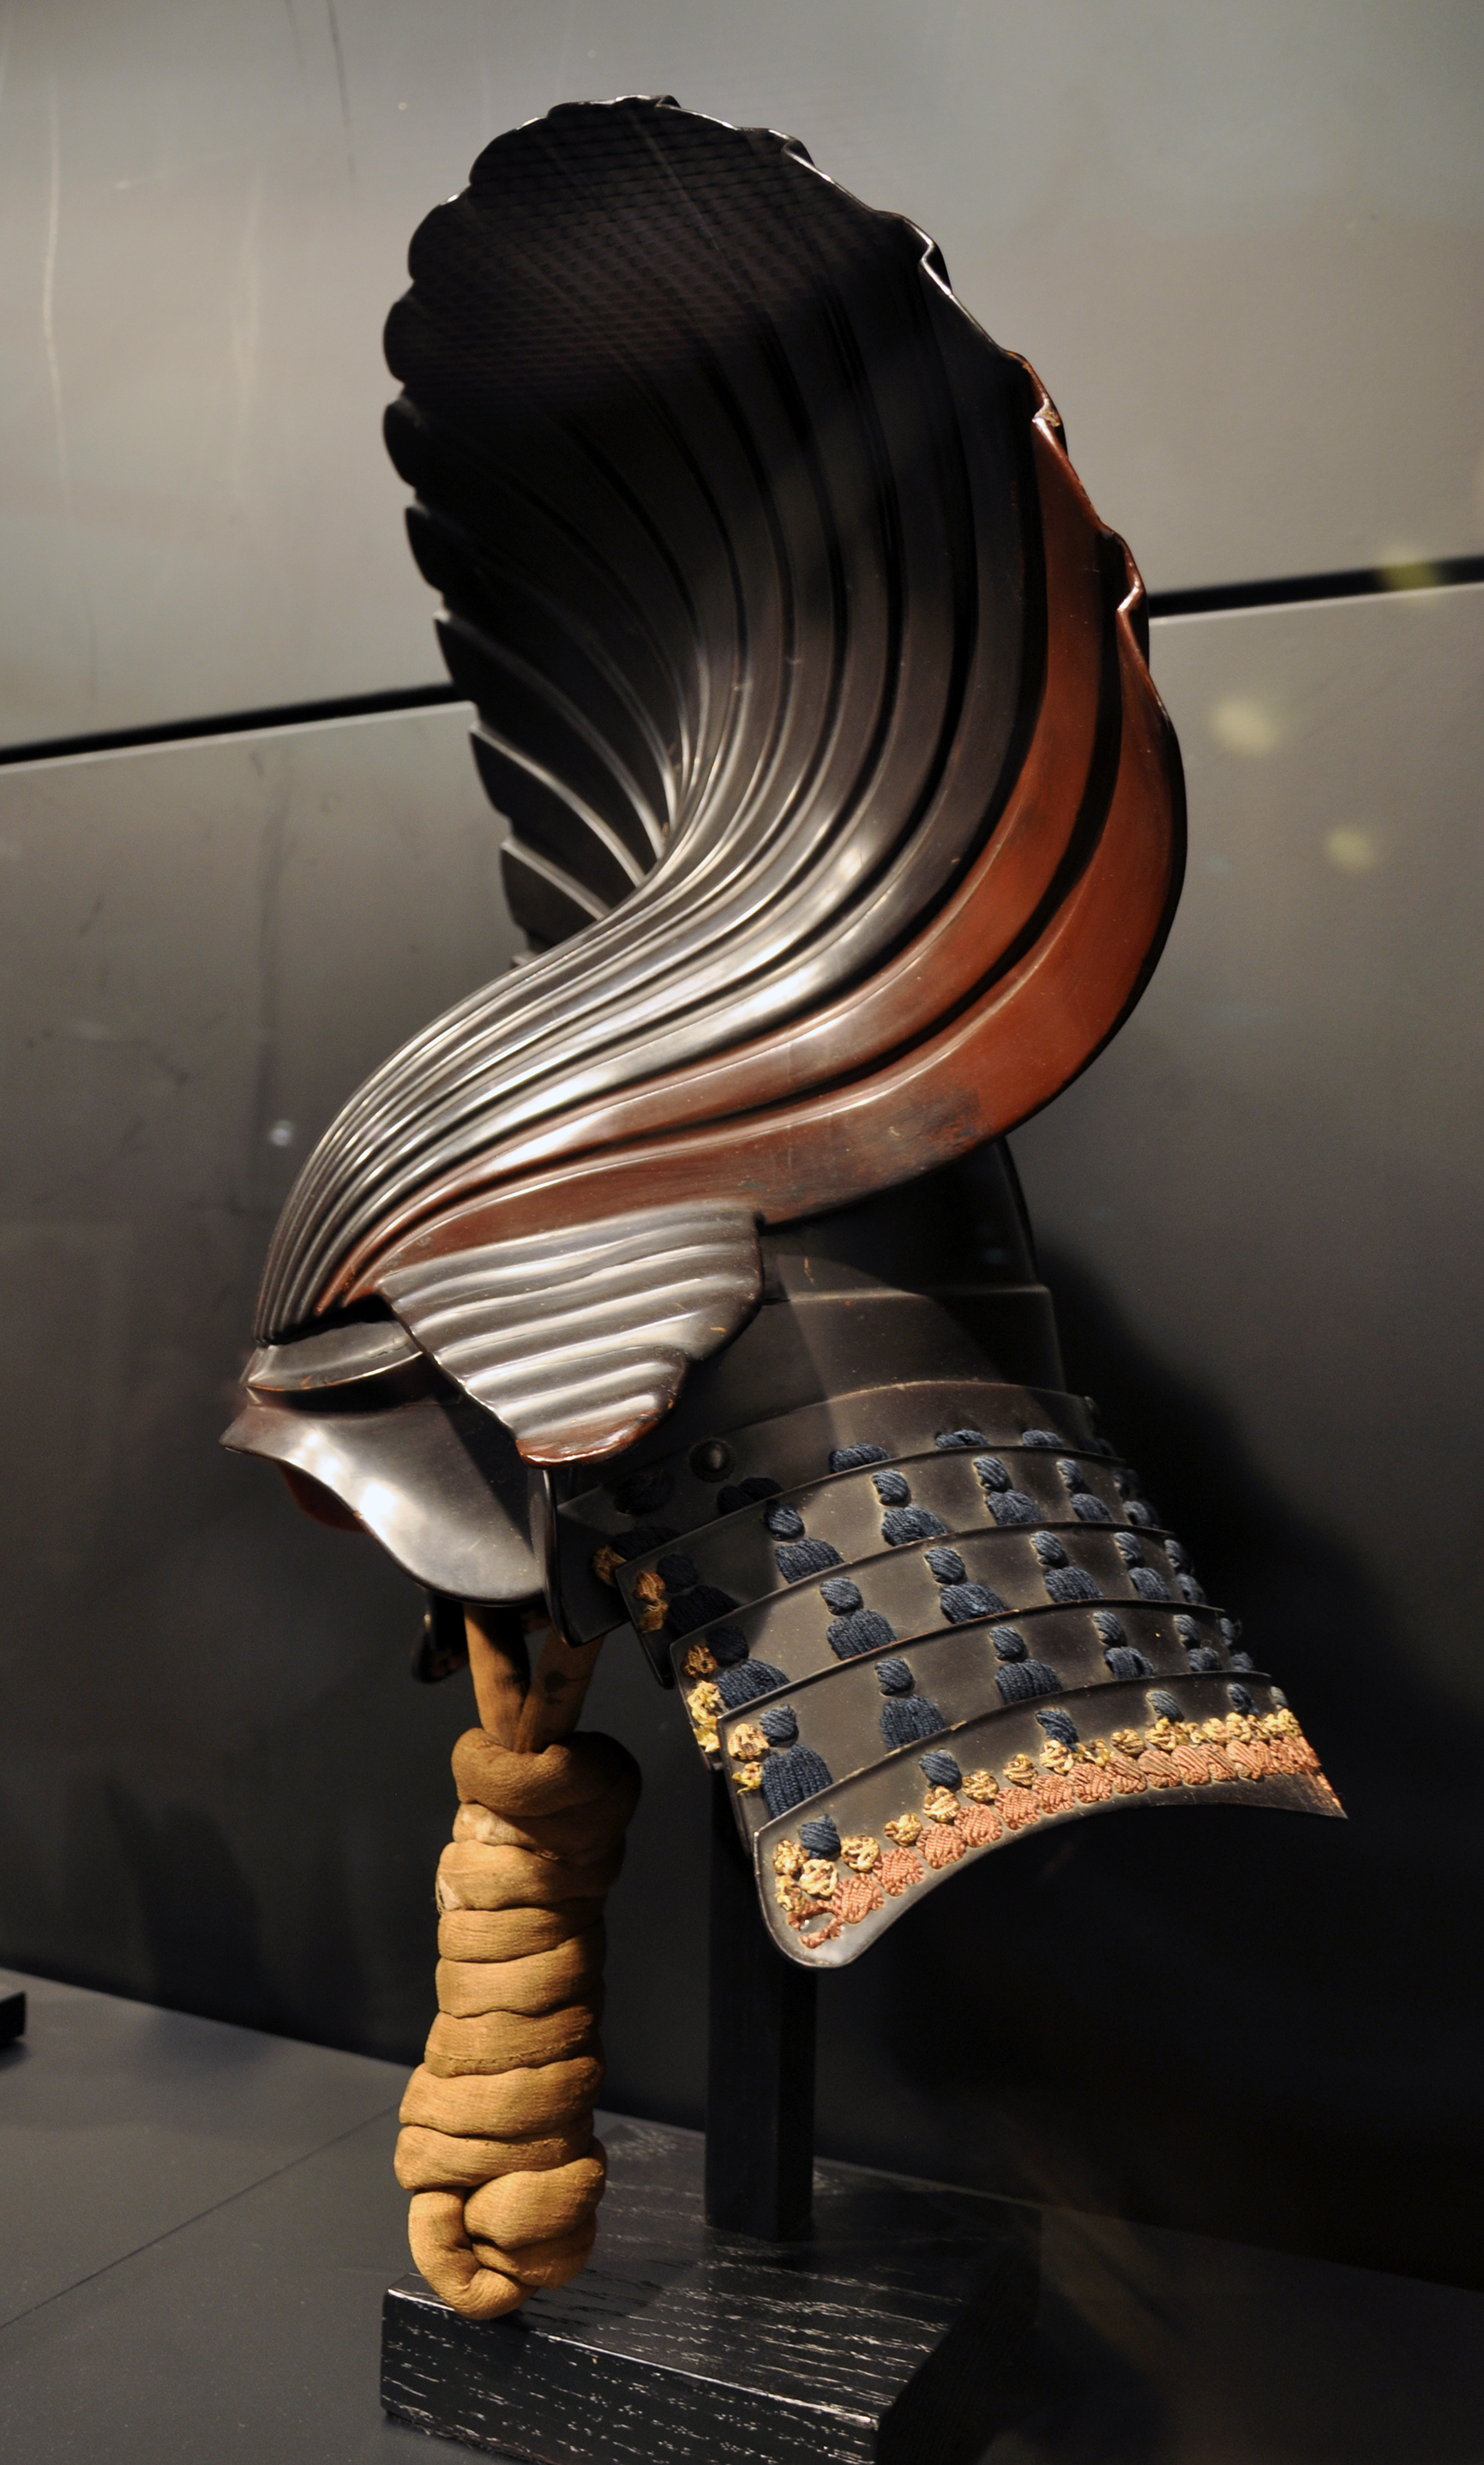 1000+ images about Samurai on Pinterest | Samurai armor ...